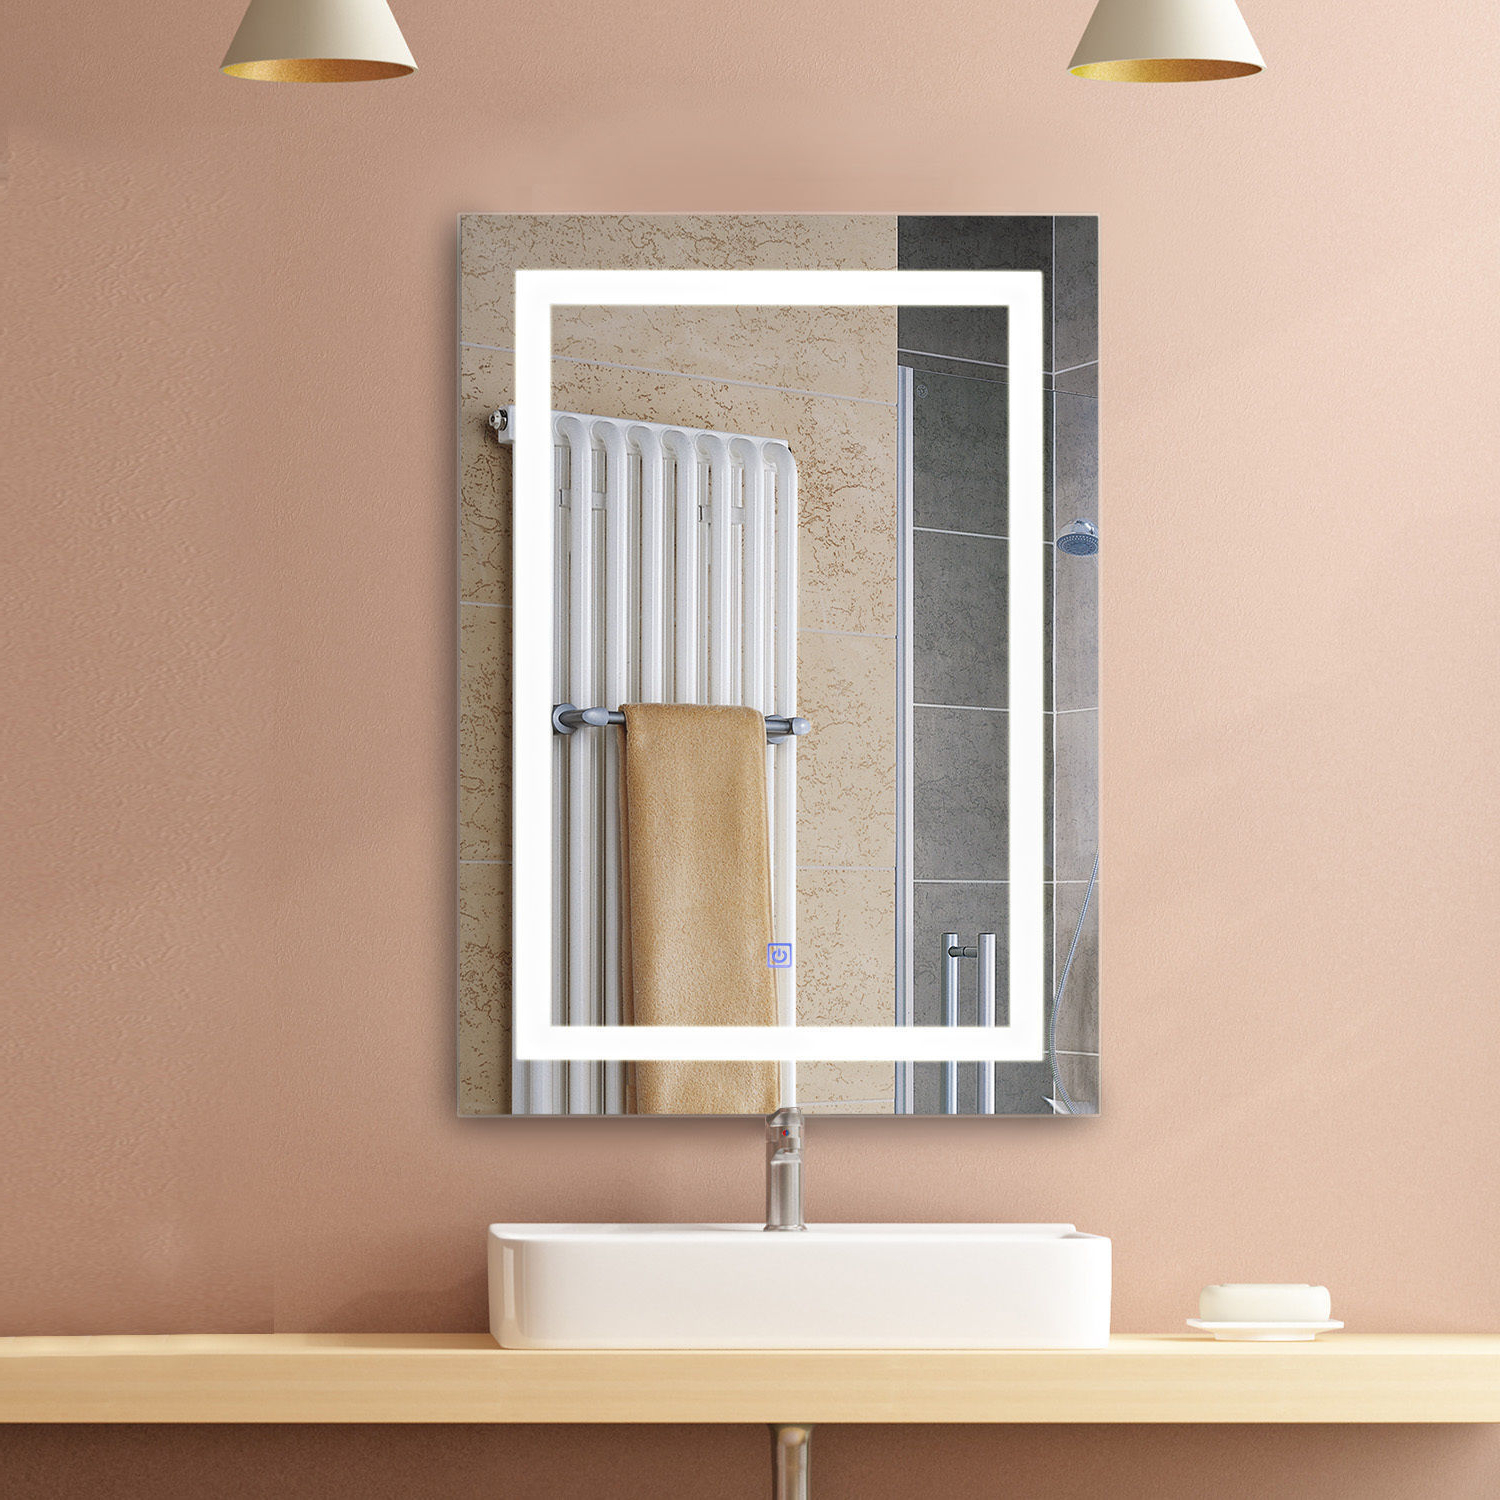 Latest Details About Illuminated Led Bathroom Vanity Mirrors With Lights Modern Makeup Wall Mirror Intended For Wall Mirrors With Light (View 16 of 20)